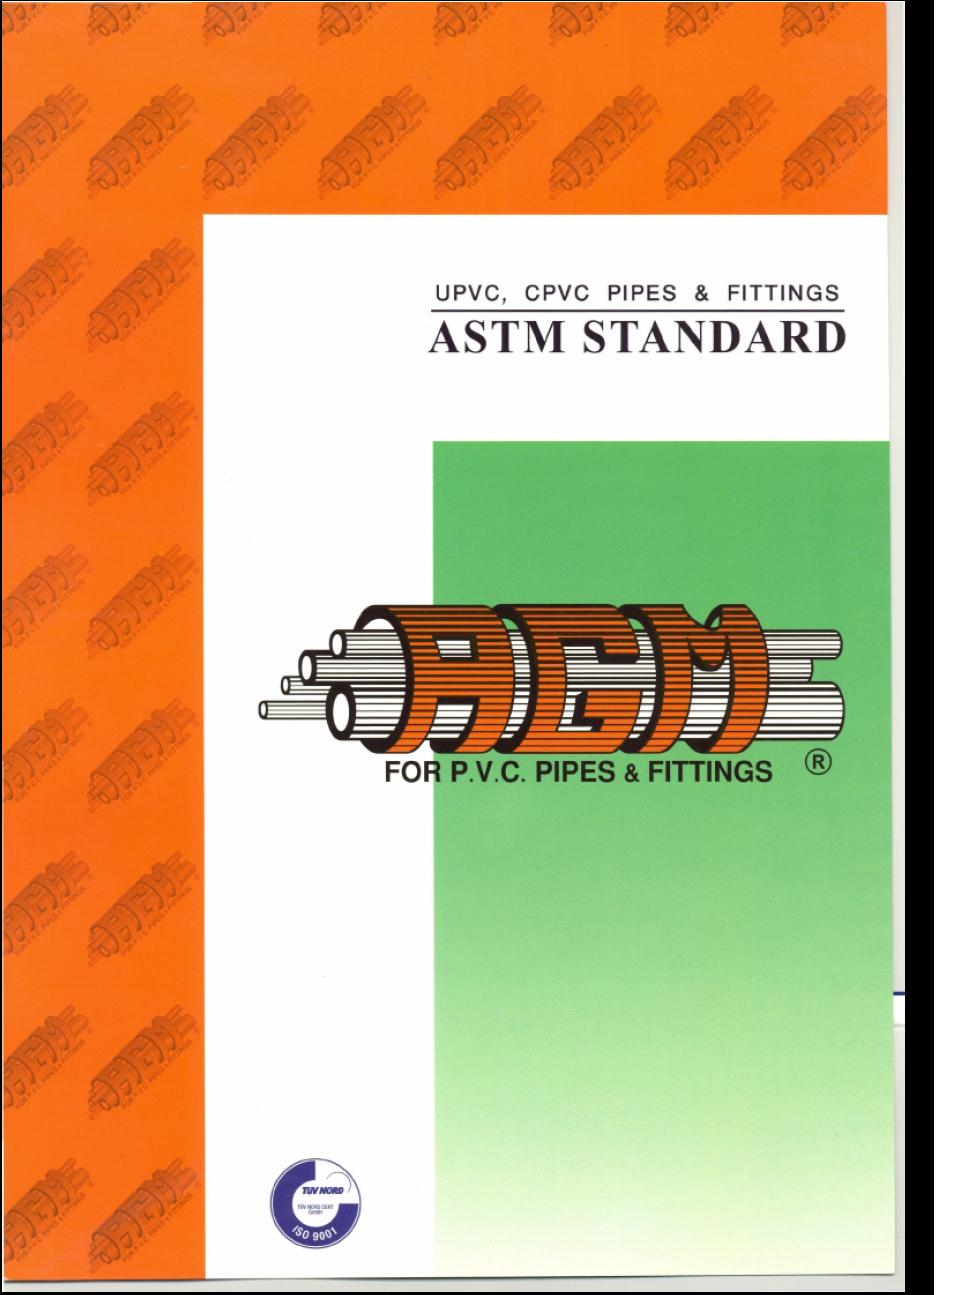 Upvc cpvc pipes fittings astm standard catalogue